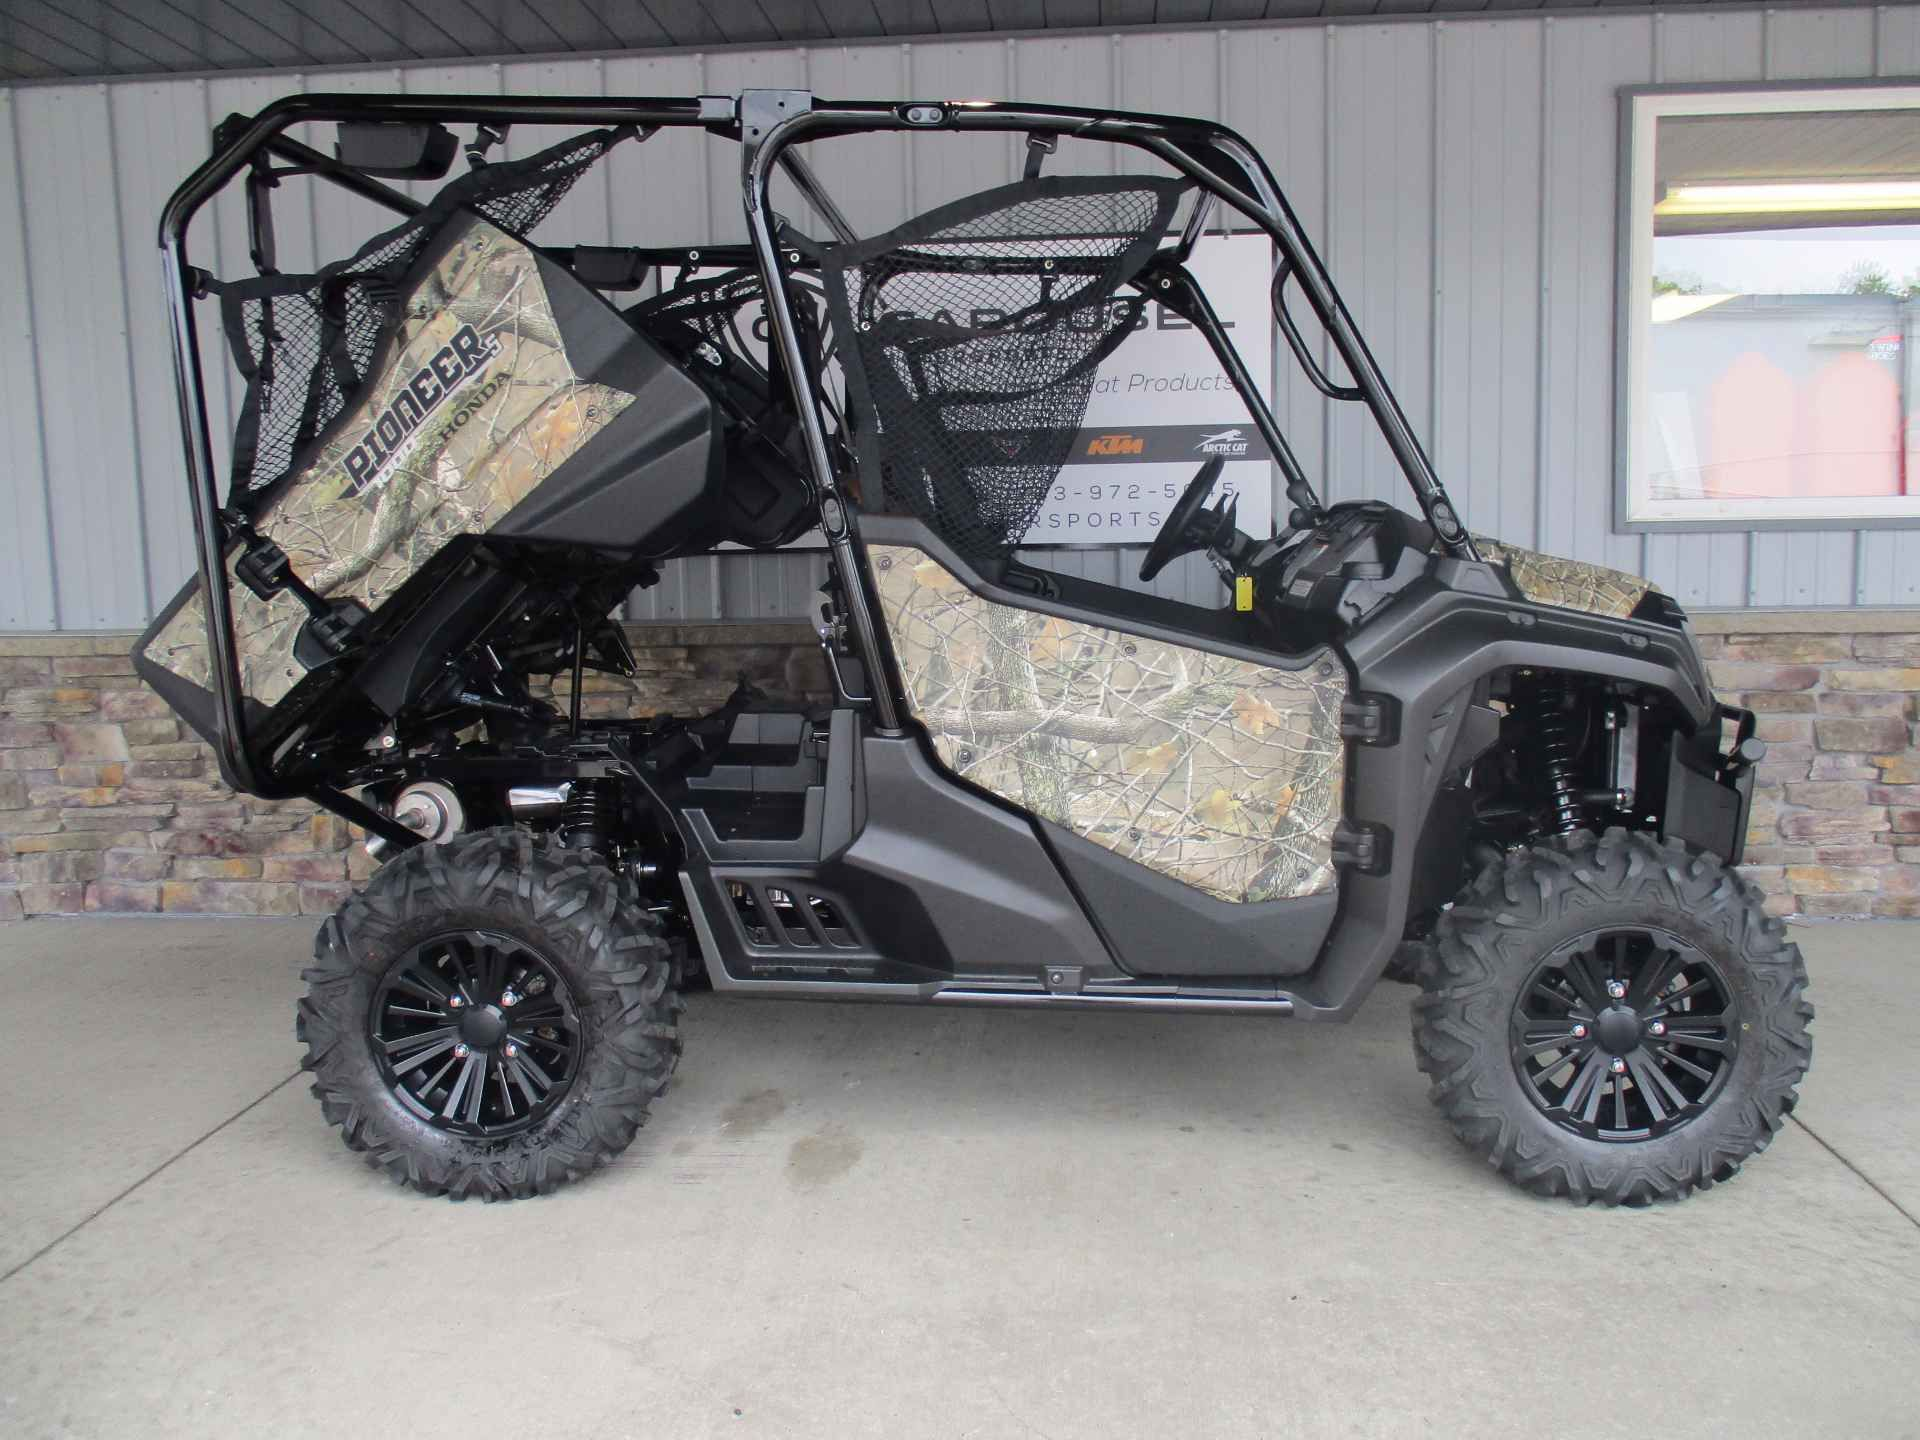 """New 2016 Honda Pioneerâ""""¢ 1000-5 Deluxe ATVs For Sale in Minnesota. GET THIS NEW 2016 HONDA PIONEER DELUXE 5 SEAT IN HONDA PHANTOM CAMO PATTERN NOW ON SALE FOR $ 15,795.00 AT CAROUSEL MOTORSPORTS IN DELANO. MSRP on this machine is $ 17,999.00 + $ 750.00 destination fees. The all new Honda Pioneer 1000 5 seat Deluxe now at the top of the UTV class!! Powered Honda's class-leading displacement in a compact engine size. The 999cc liquid-cooled inline twin utilizes the same Unicam®…"""